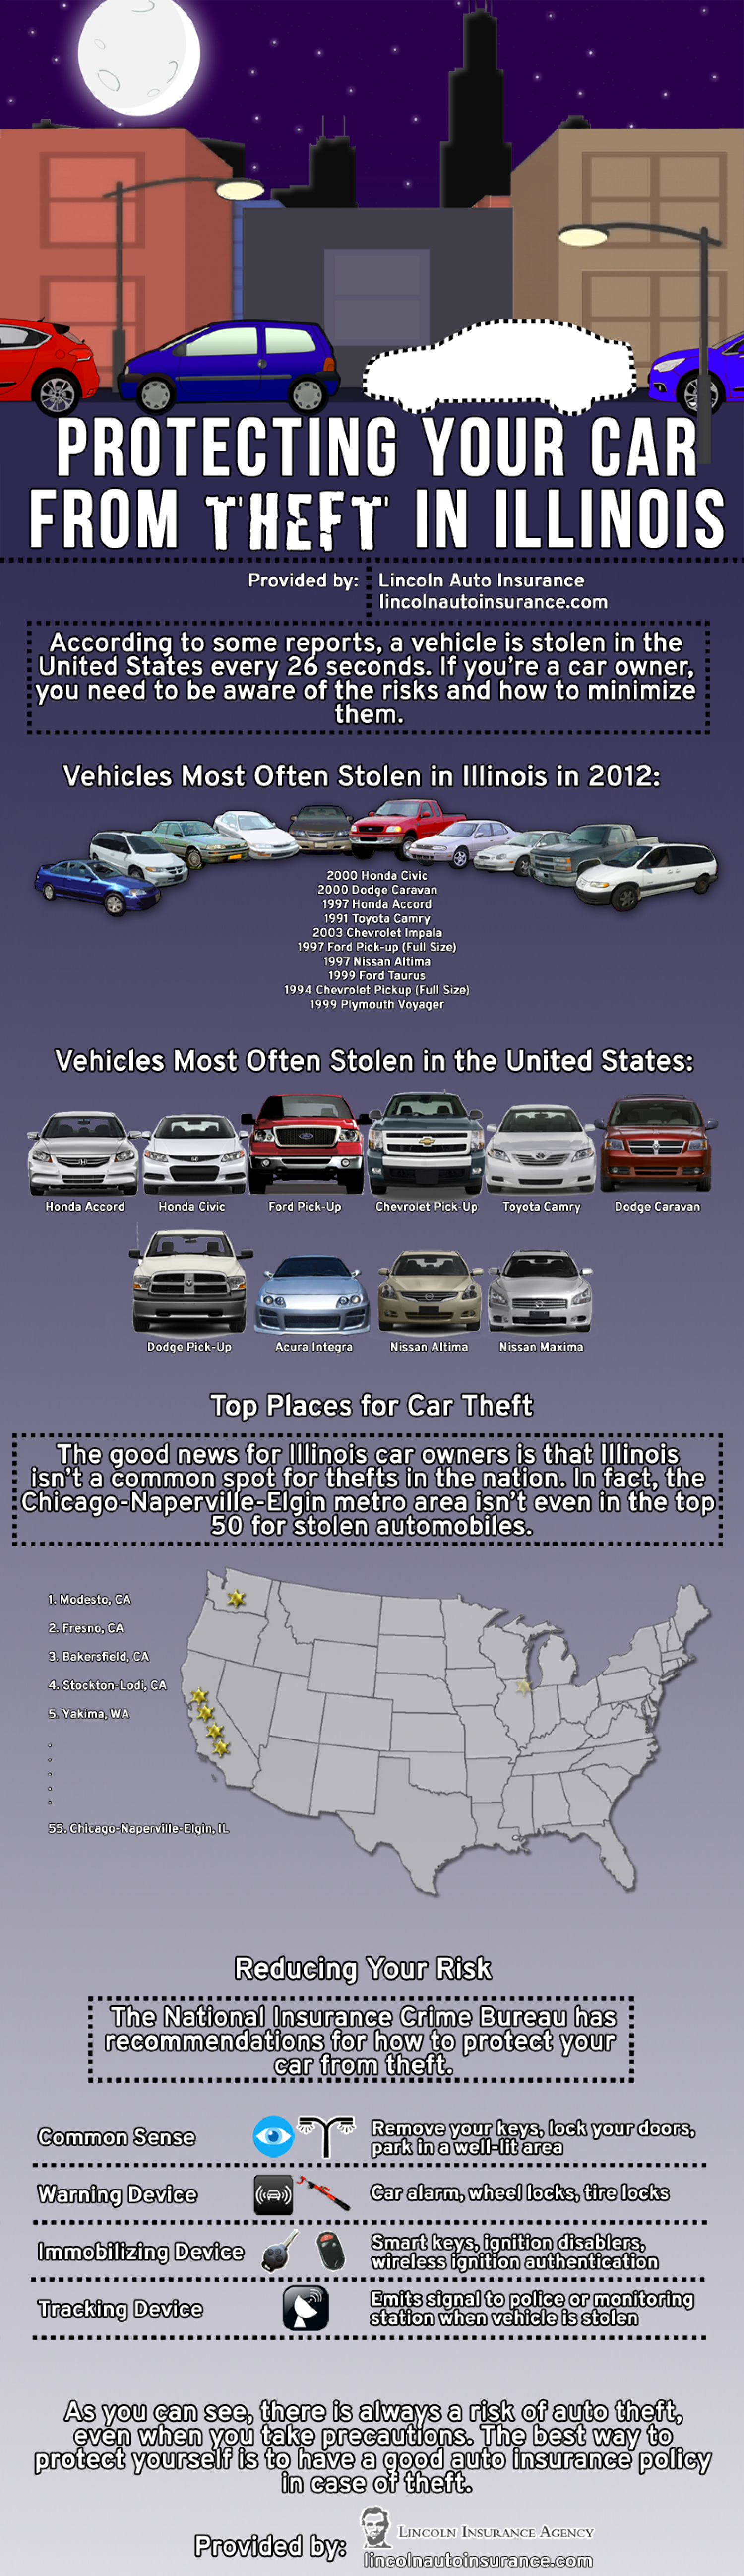 Protecting Your Car From Theft in Illinois Infographic